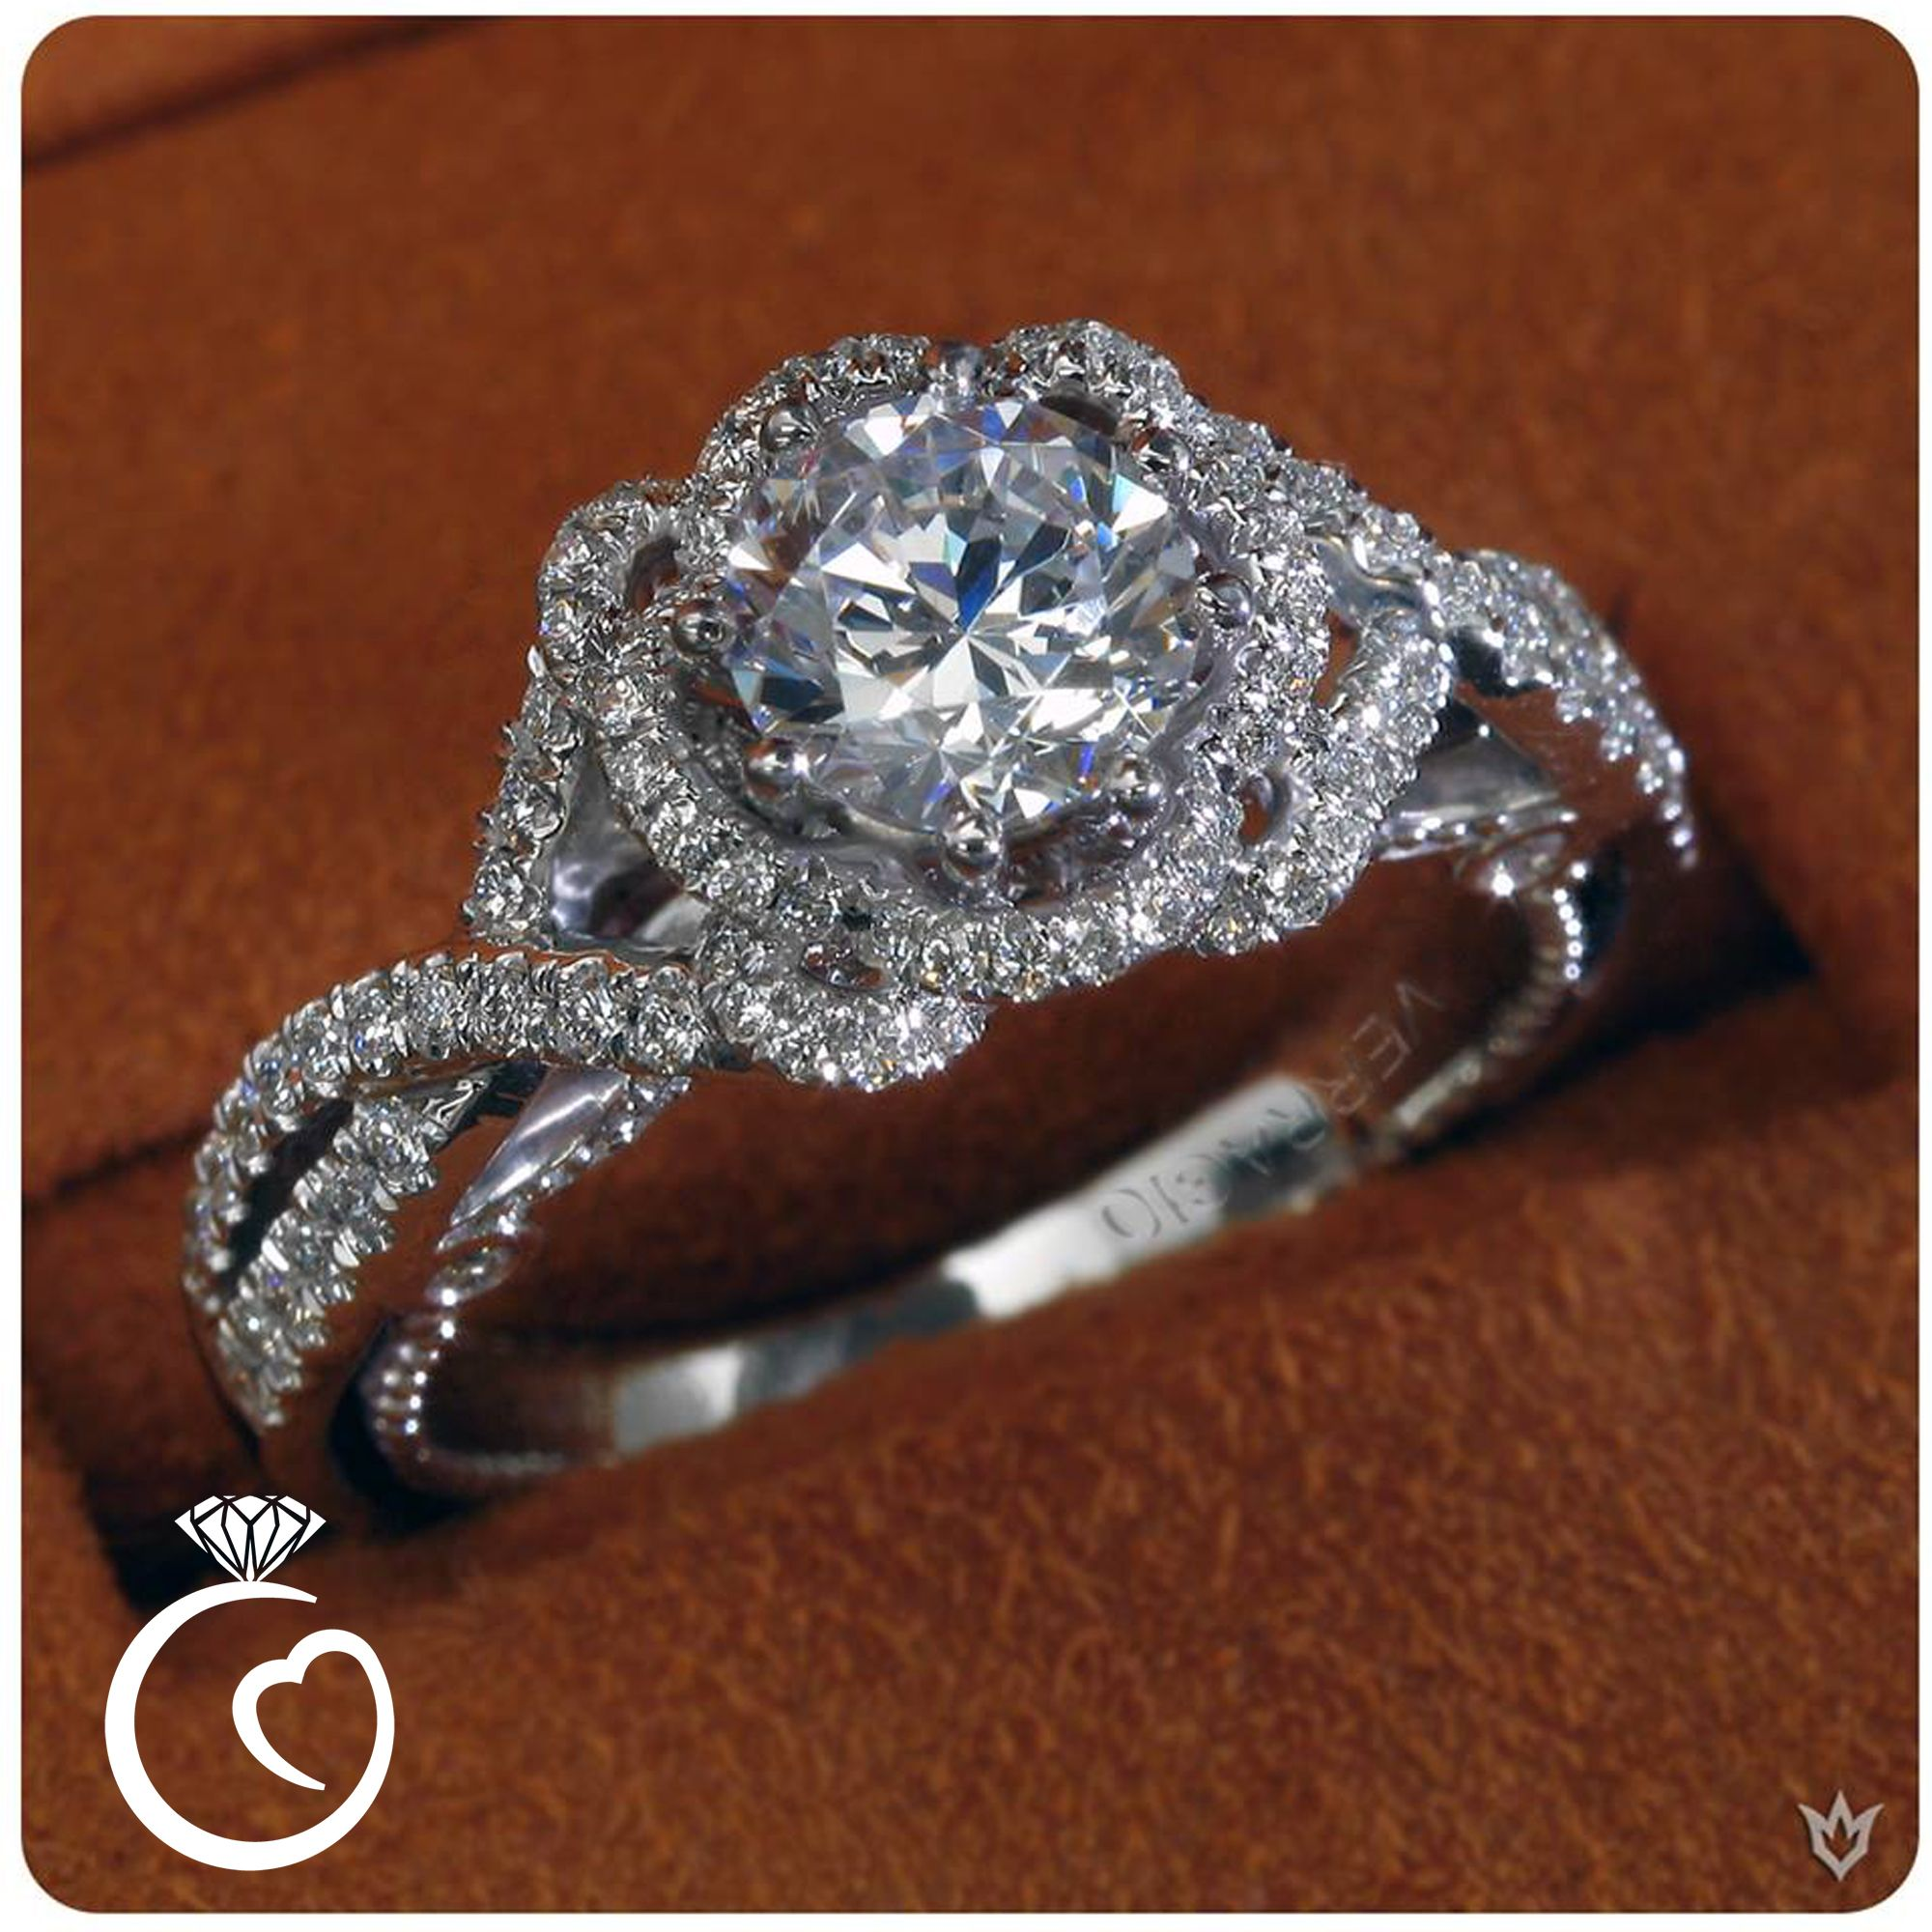 raymond lee parisian custom diamonds engagement emerald diamondsbyraymondlee rings designs by jewelry ajaffe tacori